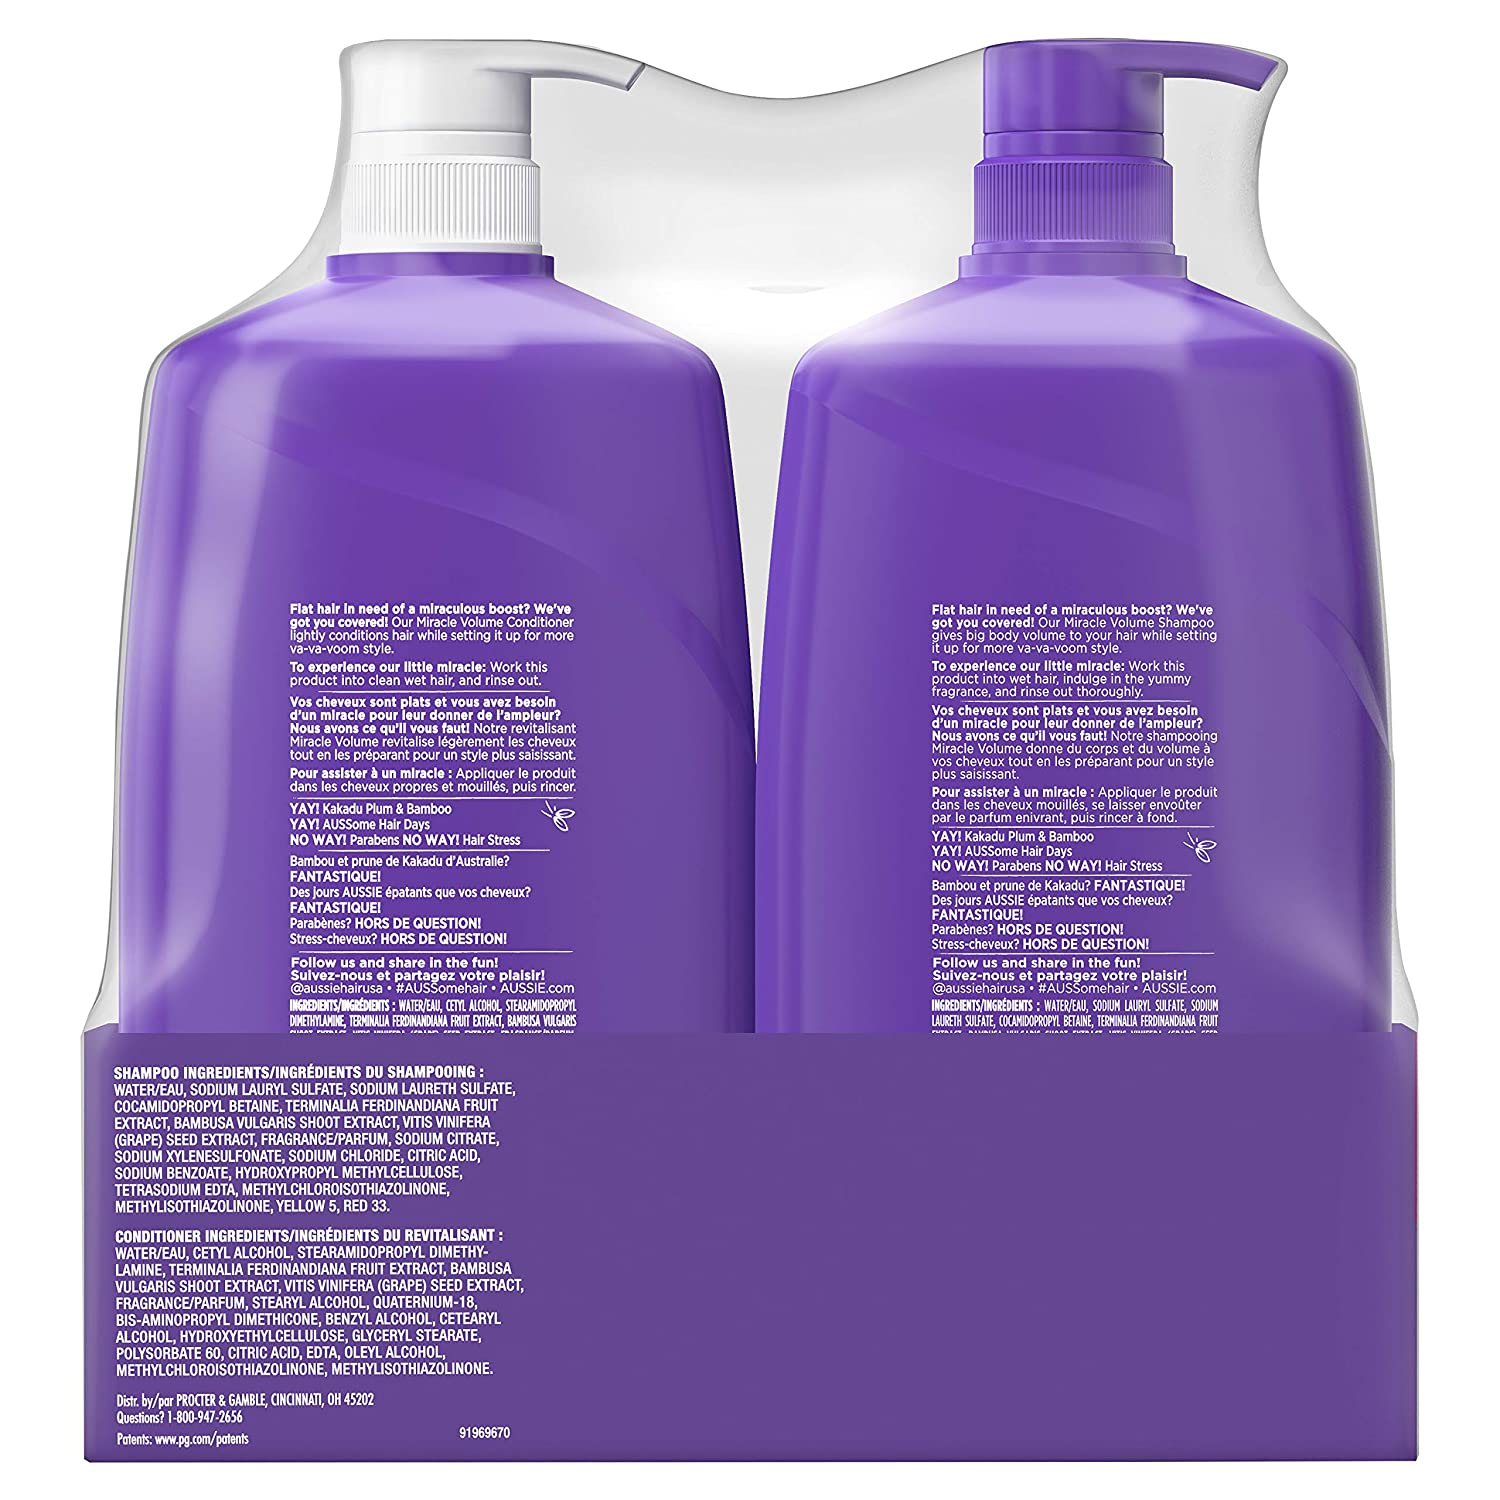 Aussie Miracle Volume With Bamboo Kakadu Plum Paraben Free Shampoo Conditioner 26 2 Fl Oz Dual Pack 52 4 Fl Oz Pack Of 2 Amazon Com Grocery Gourmet Food